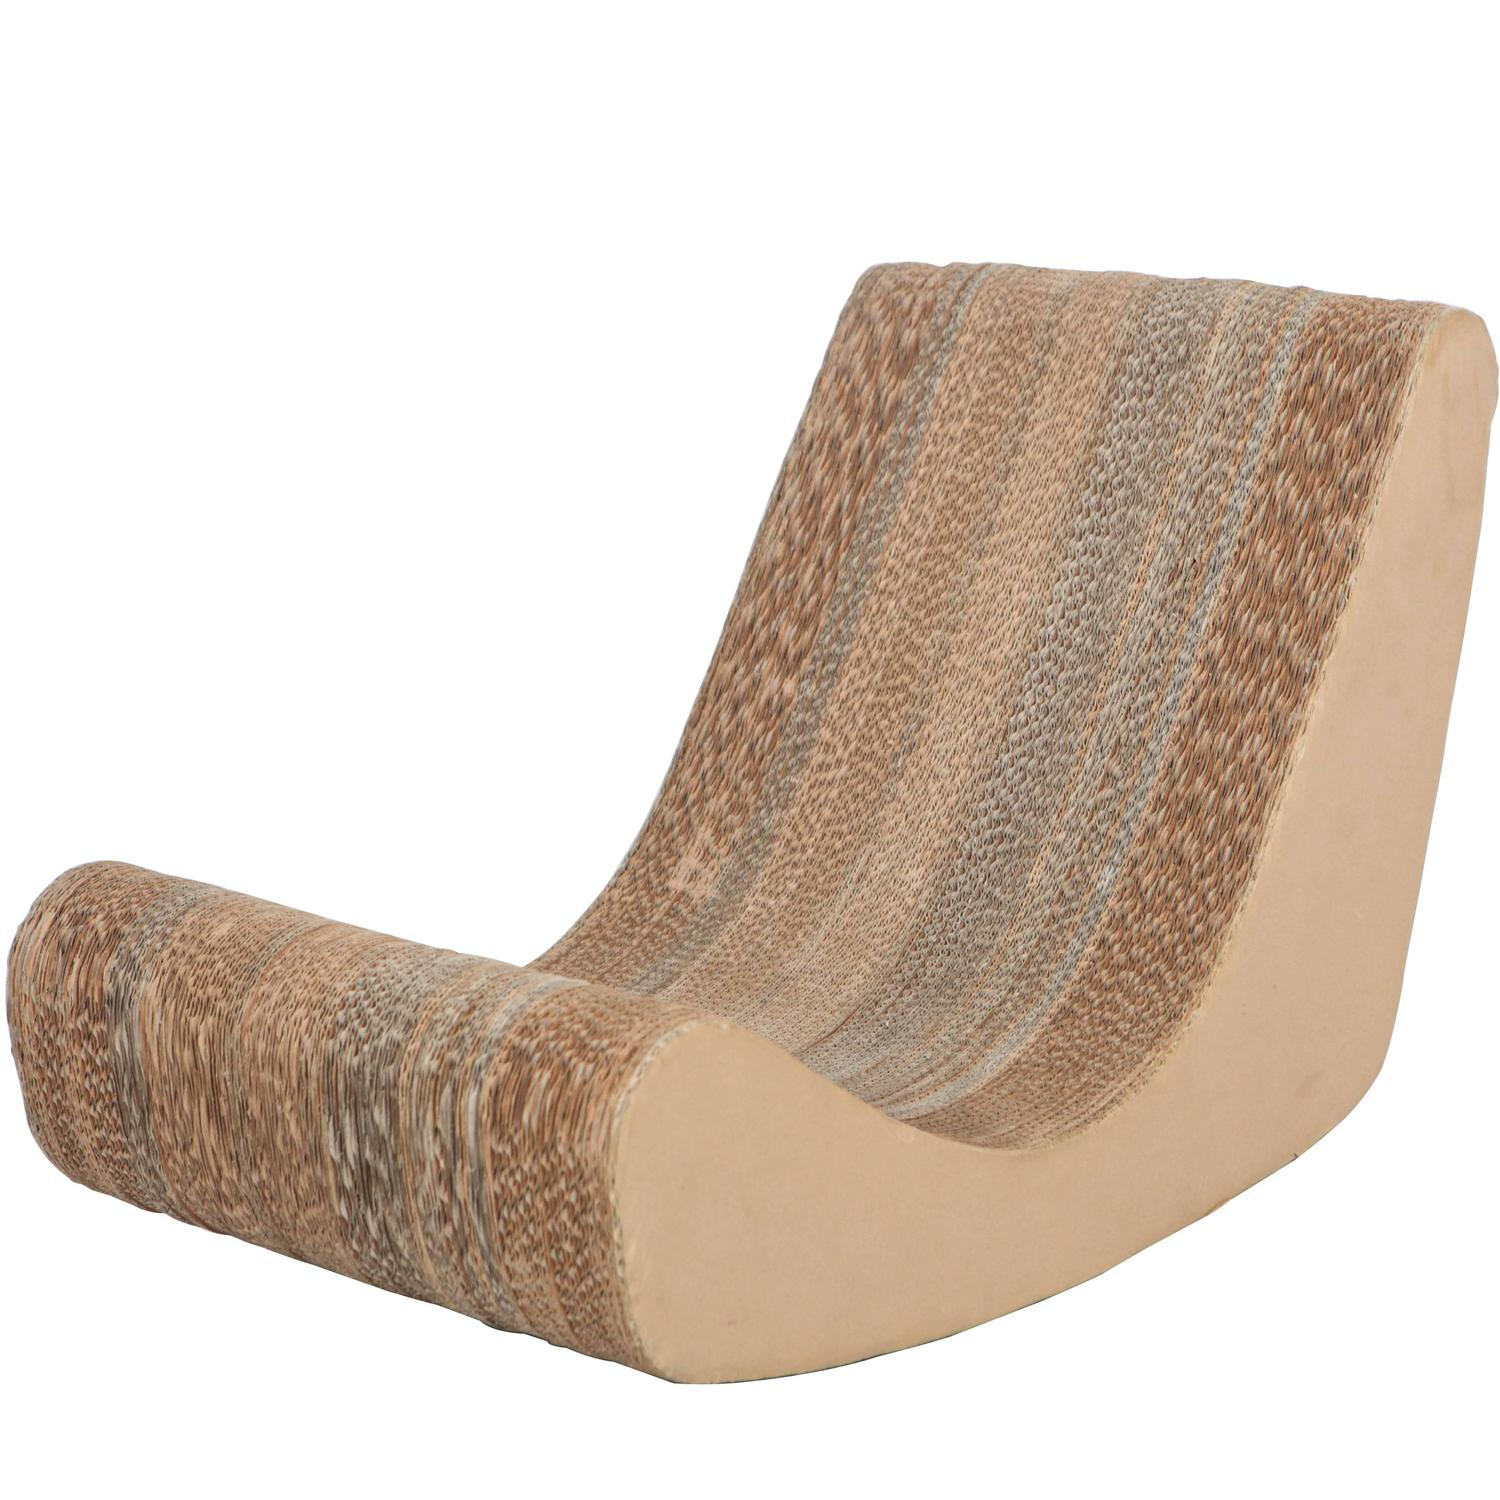 frank gehry cardboard chairs hickory chair newbury stool corrugated low rocker in the style of